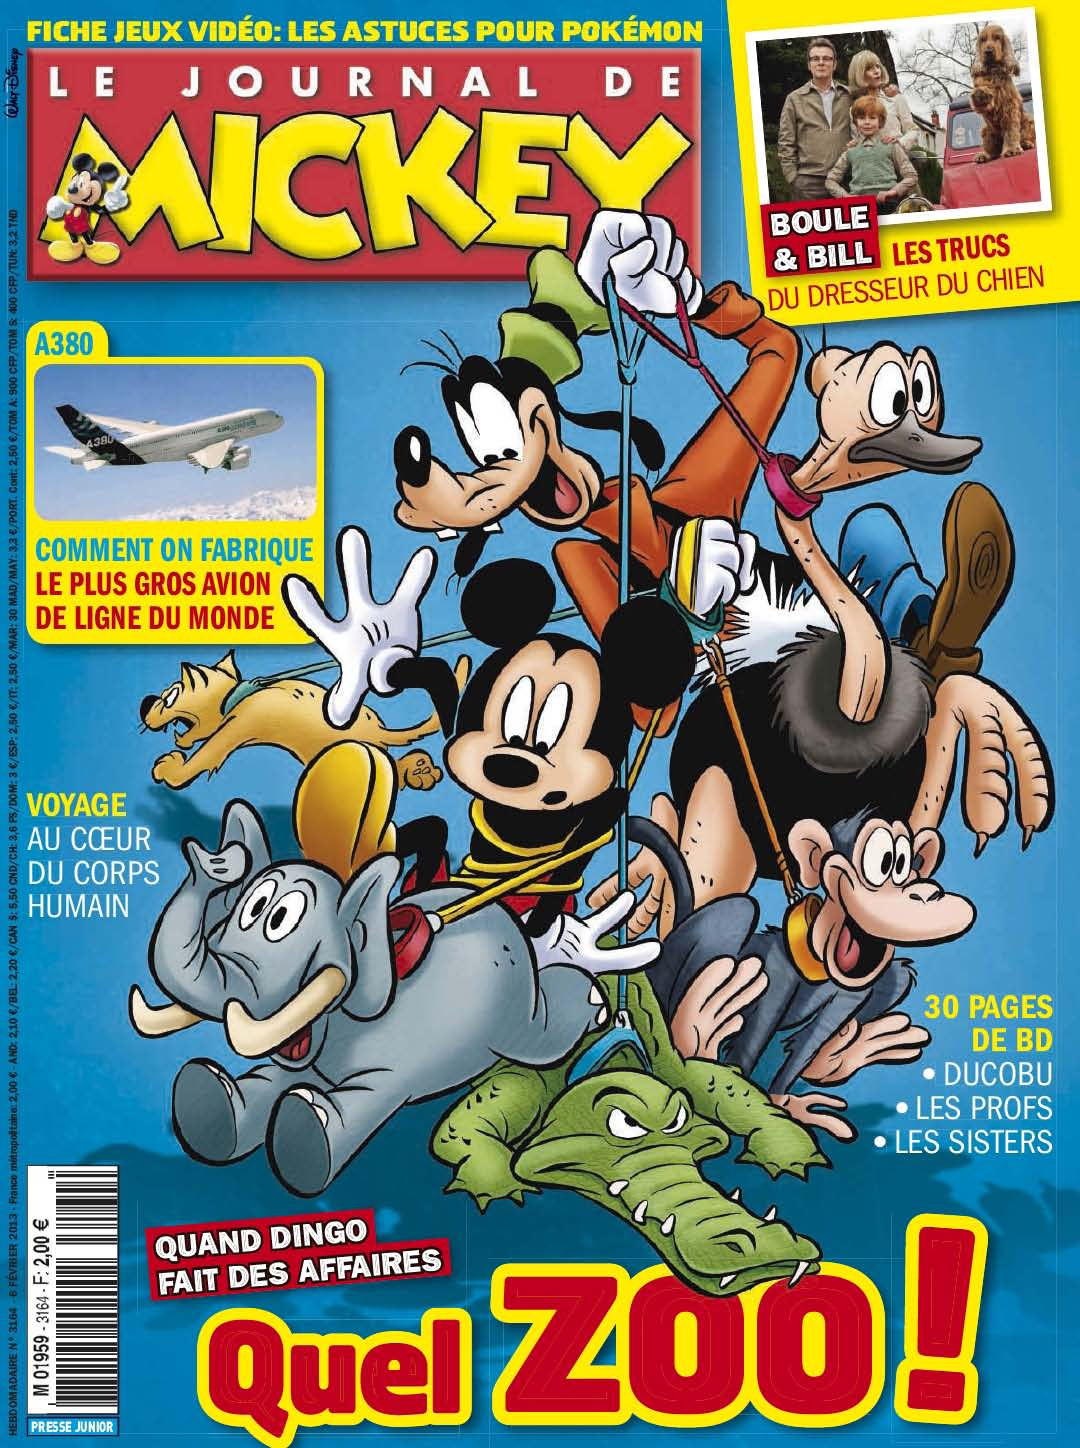 le journal de mickey journal de mickey 3164. Black Bedroom Furniture Sets. Home Design Ideas